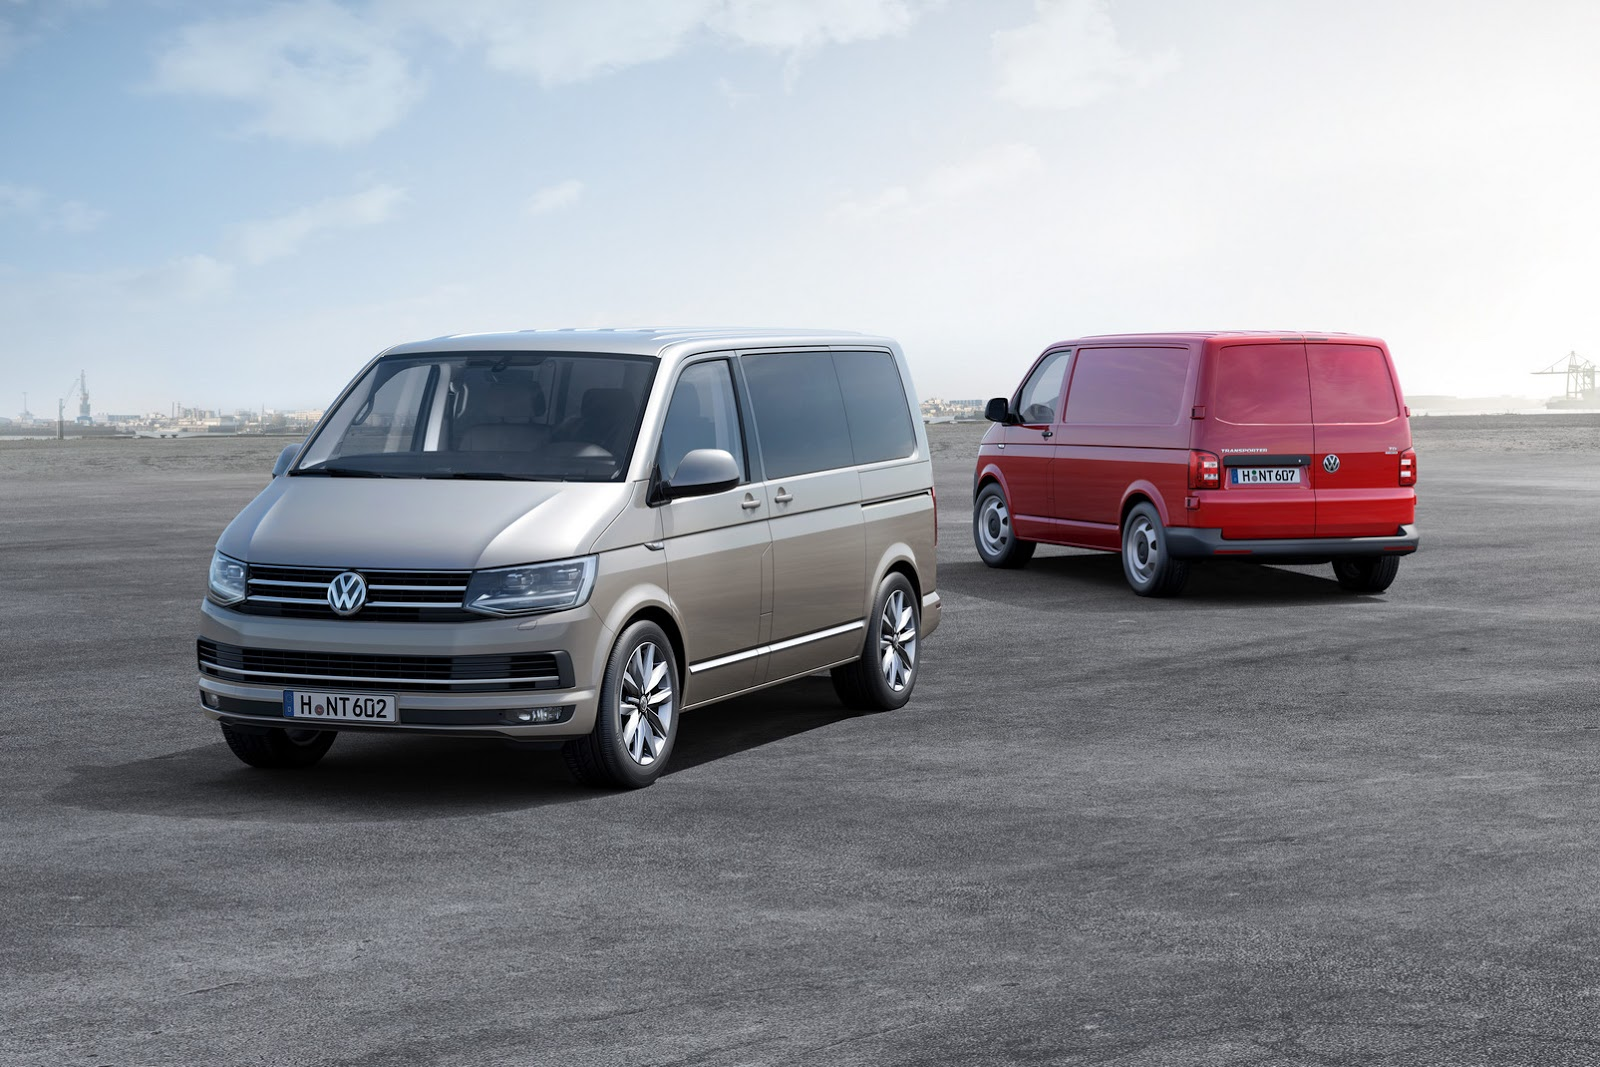 The Motoring World Honest John Awards Volkswagen T6 Panel Van Red Motor German Sixth Generation Transporter Was Selected As Outright Winner In Most Popular Category Ahead Of Four Other Shortlisted Commercial Vehicles